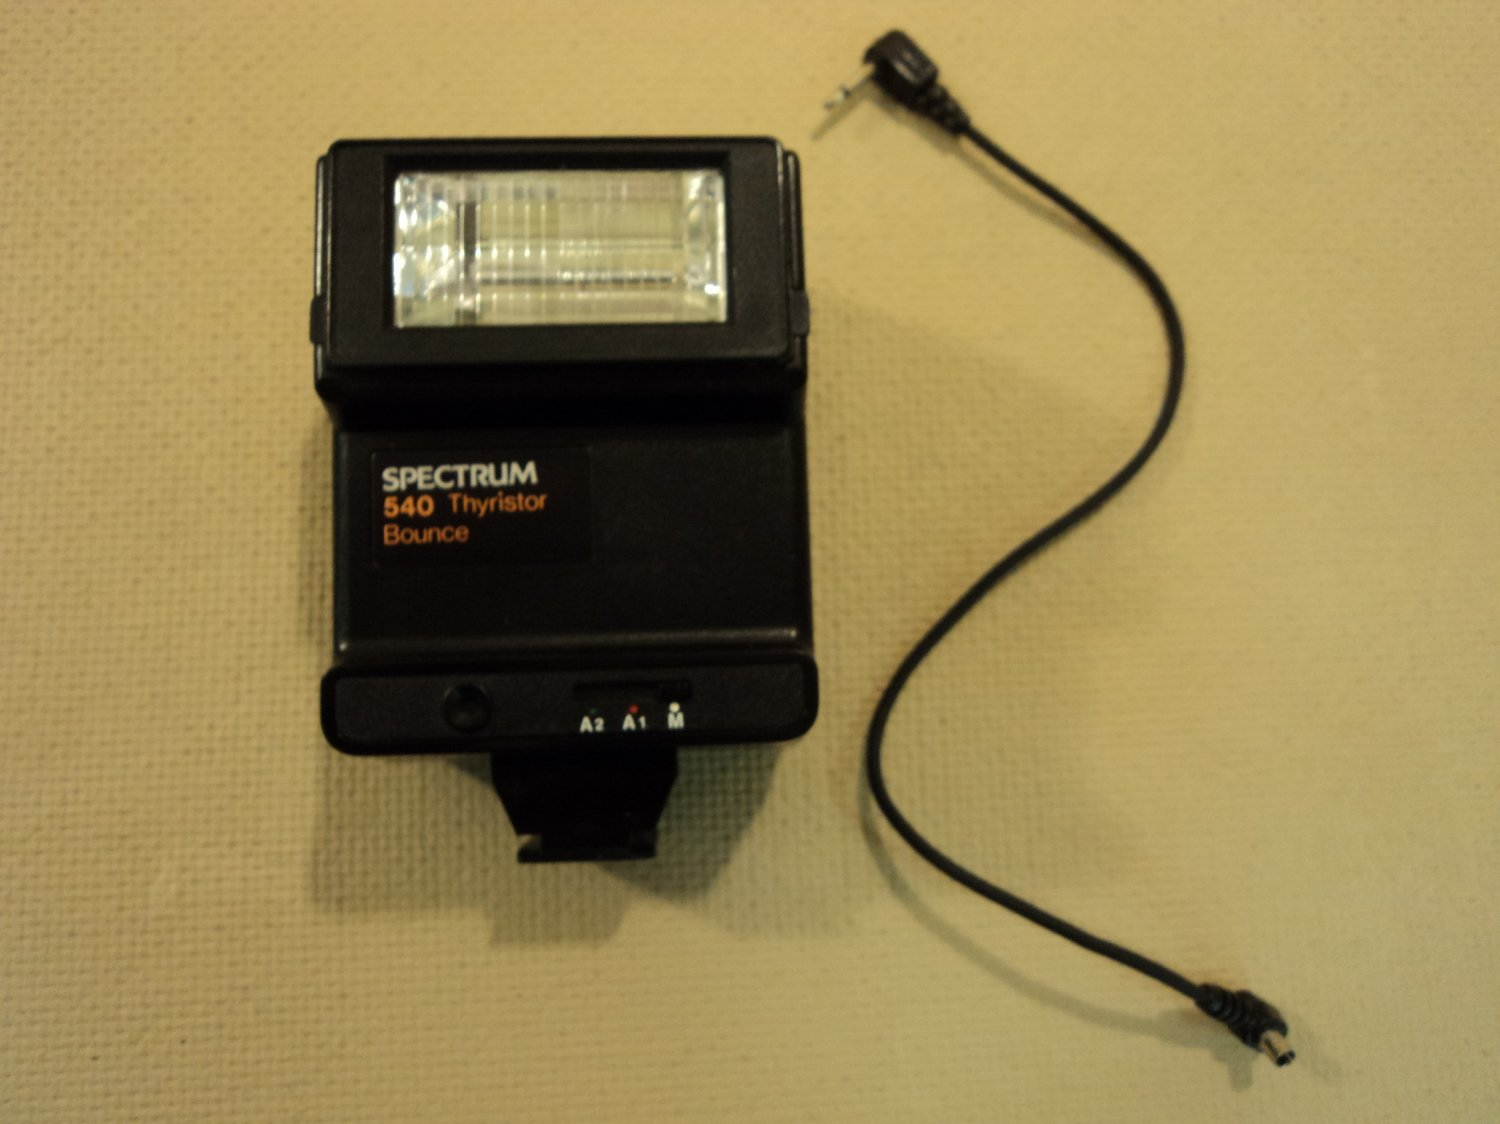 Spectrum Thyristor Bounce Flash Black SLR Film 540 Vintage